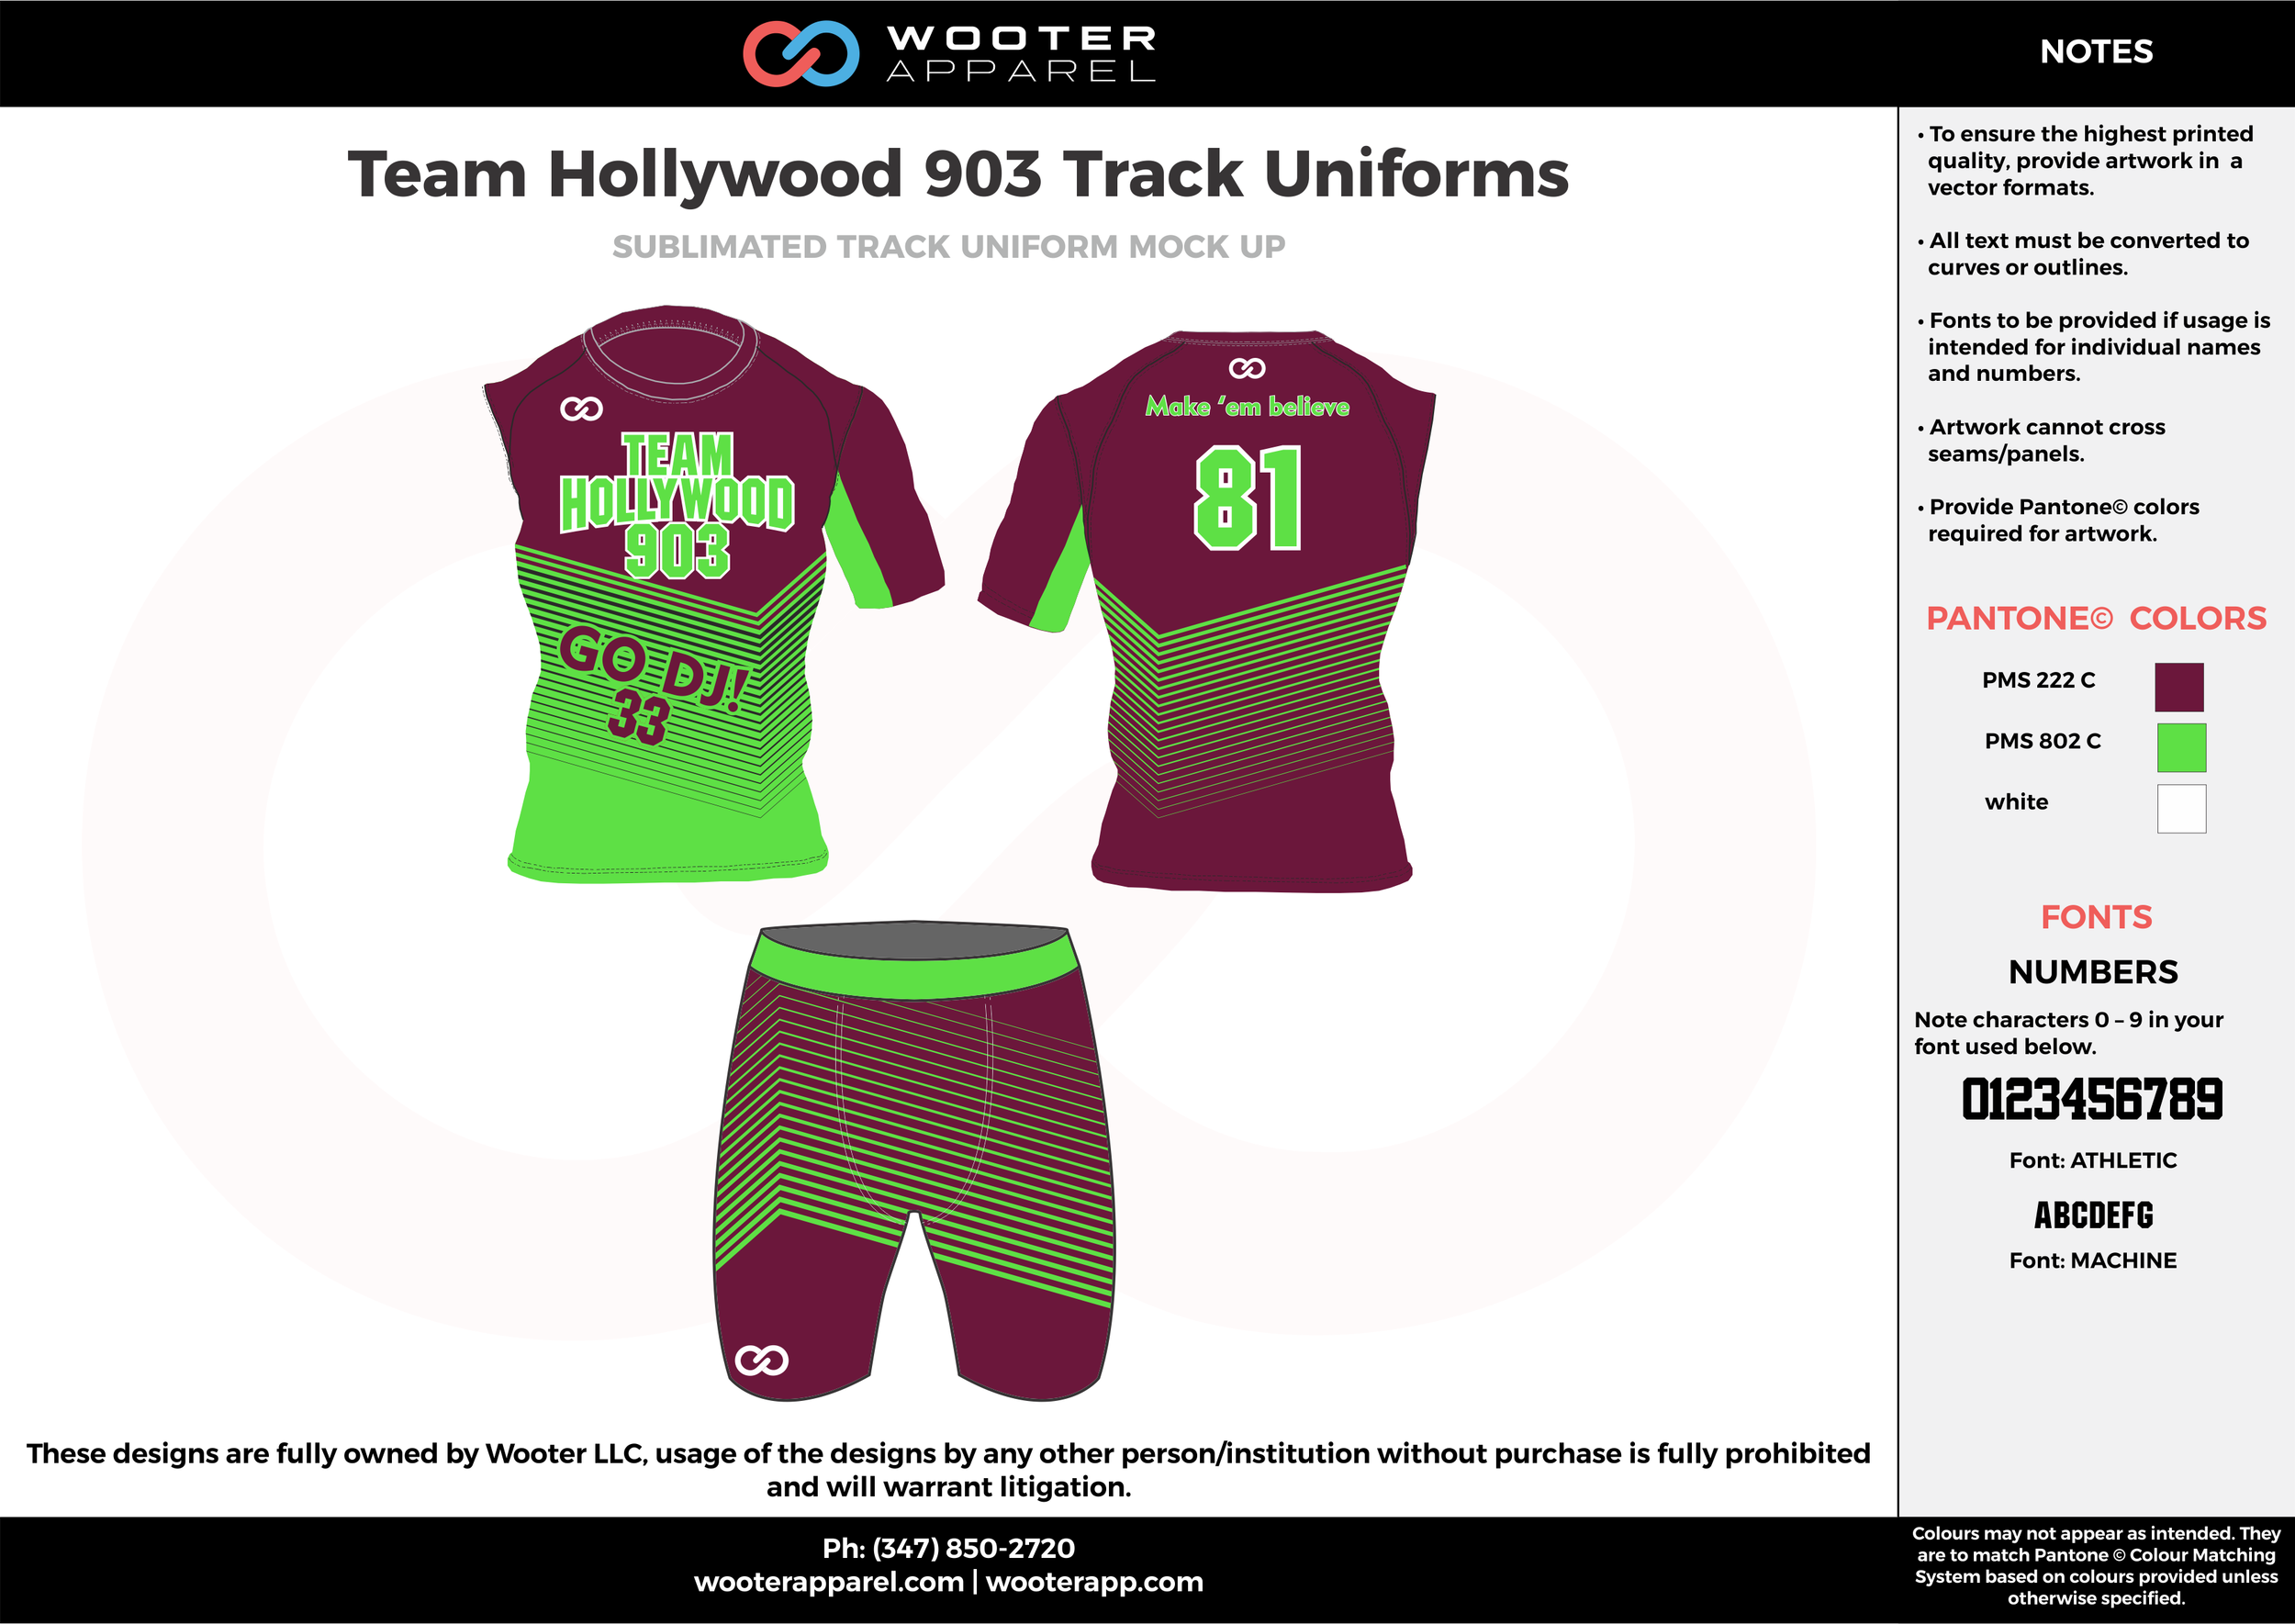 Team Hollywood 903 Track Uniforms Maroon Green and white Sublimated Compression Track Uniforms Shirts and Shorts